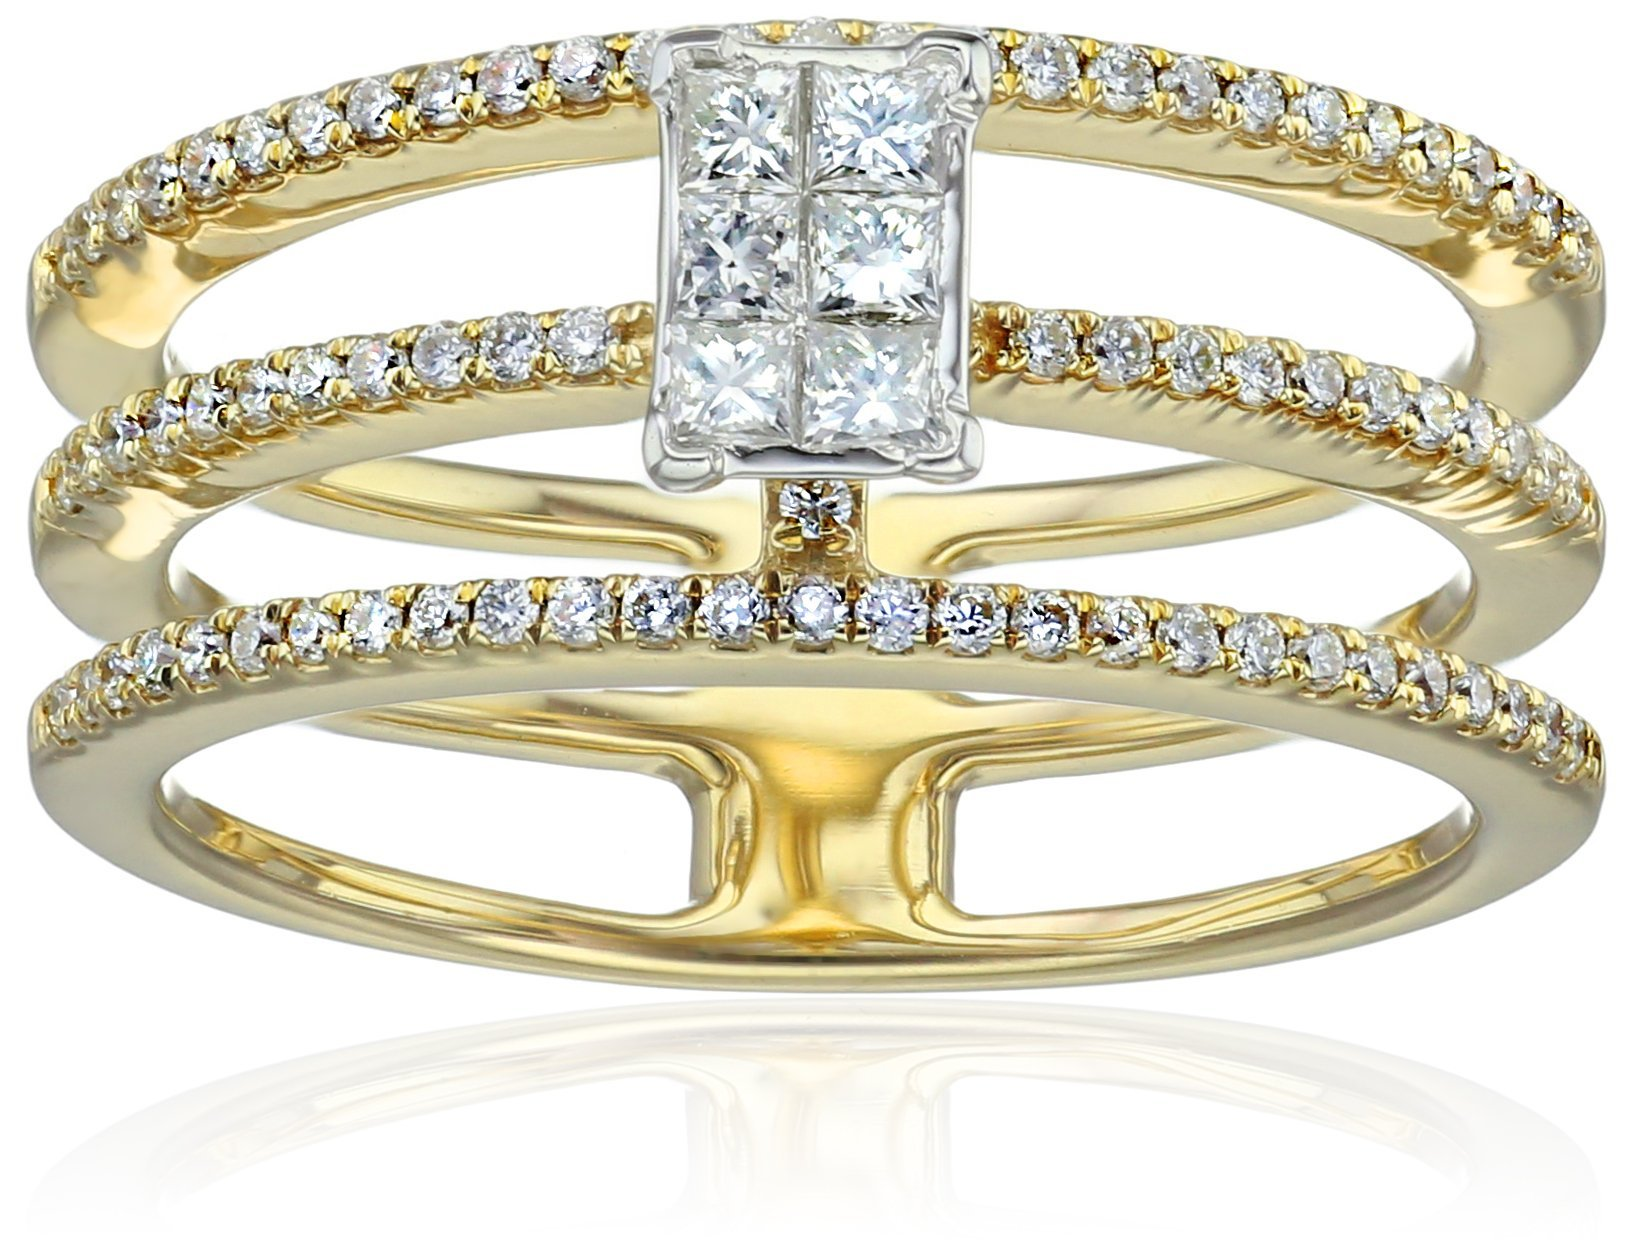 IGI Certified 14k Yellow Gold Diamond with Invisible Set Center Engagement Ring (1/2cttw, H-I Color, I1-I2 Clarity), Size 7